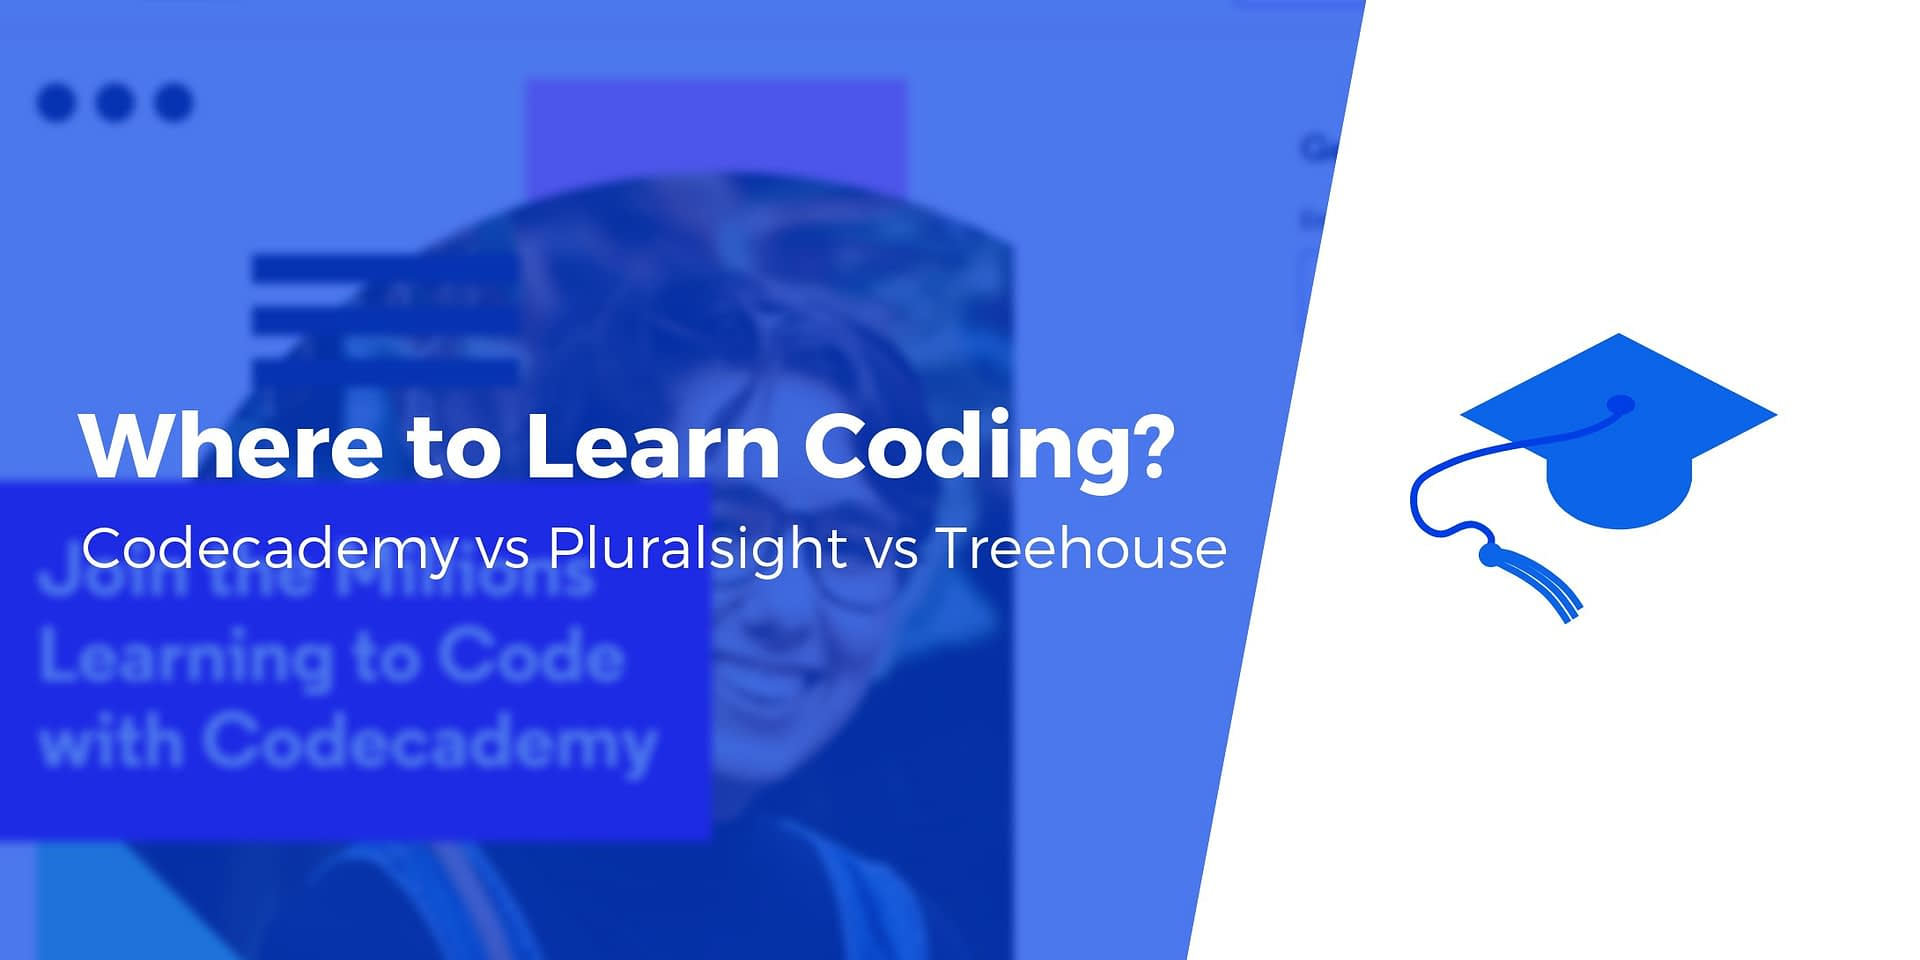 Codecademy vs Pluralsight vs Treehouse: Which Is Right for You?